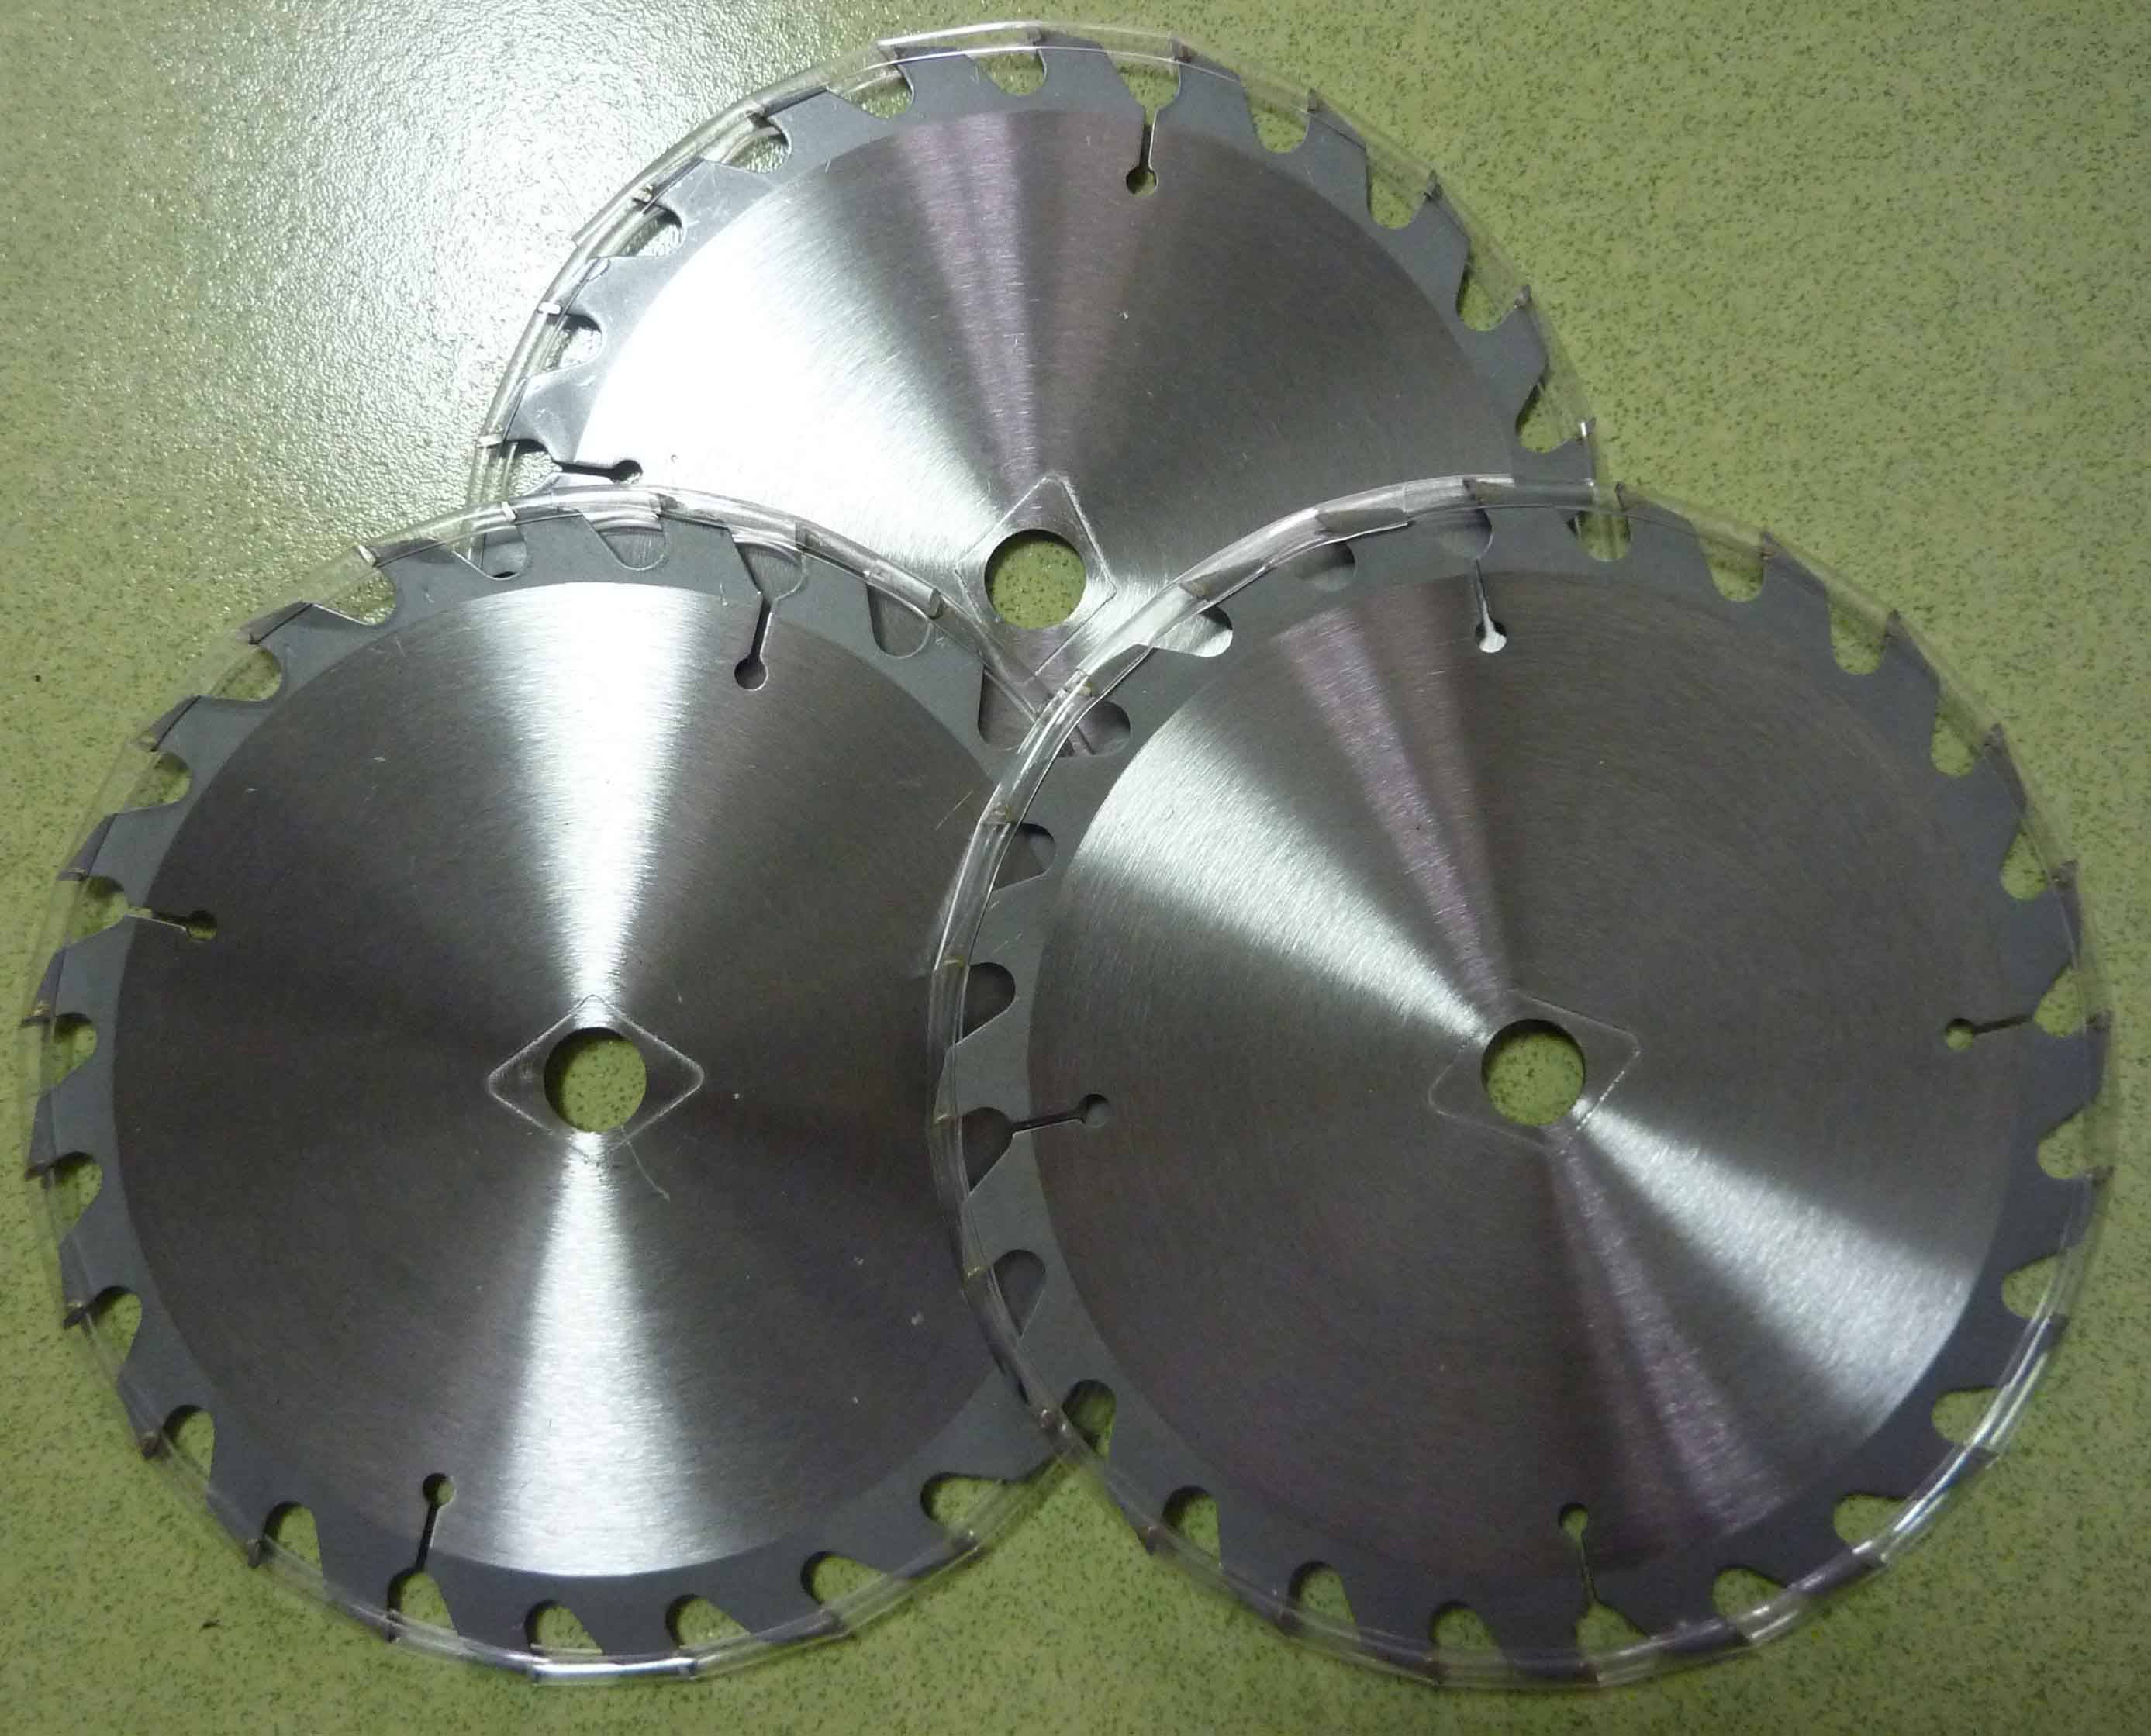 carbide tip saw blades carbide tipped circular saw blades